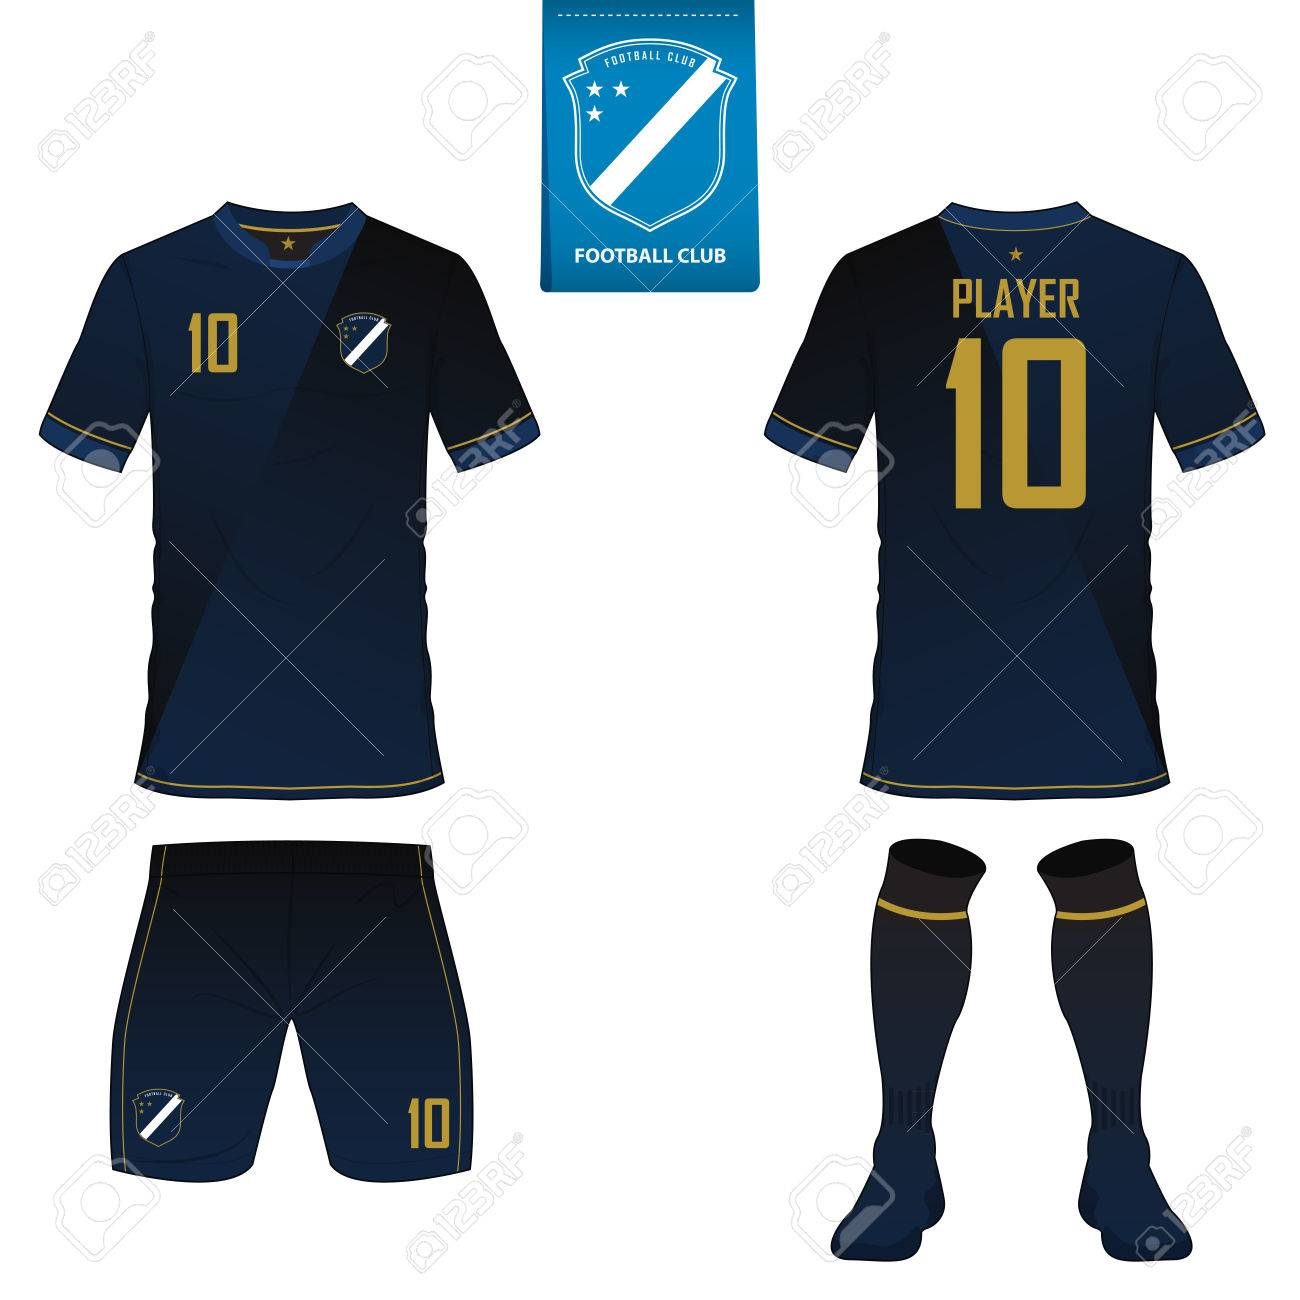 Set of soccer kit or football jersey template for football club. Flat football logo on blue label. Front and back view soccer uniform. - 75492740